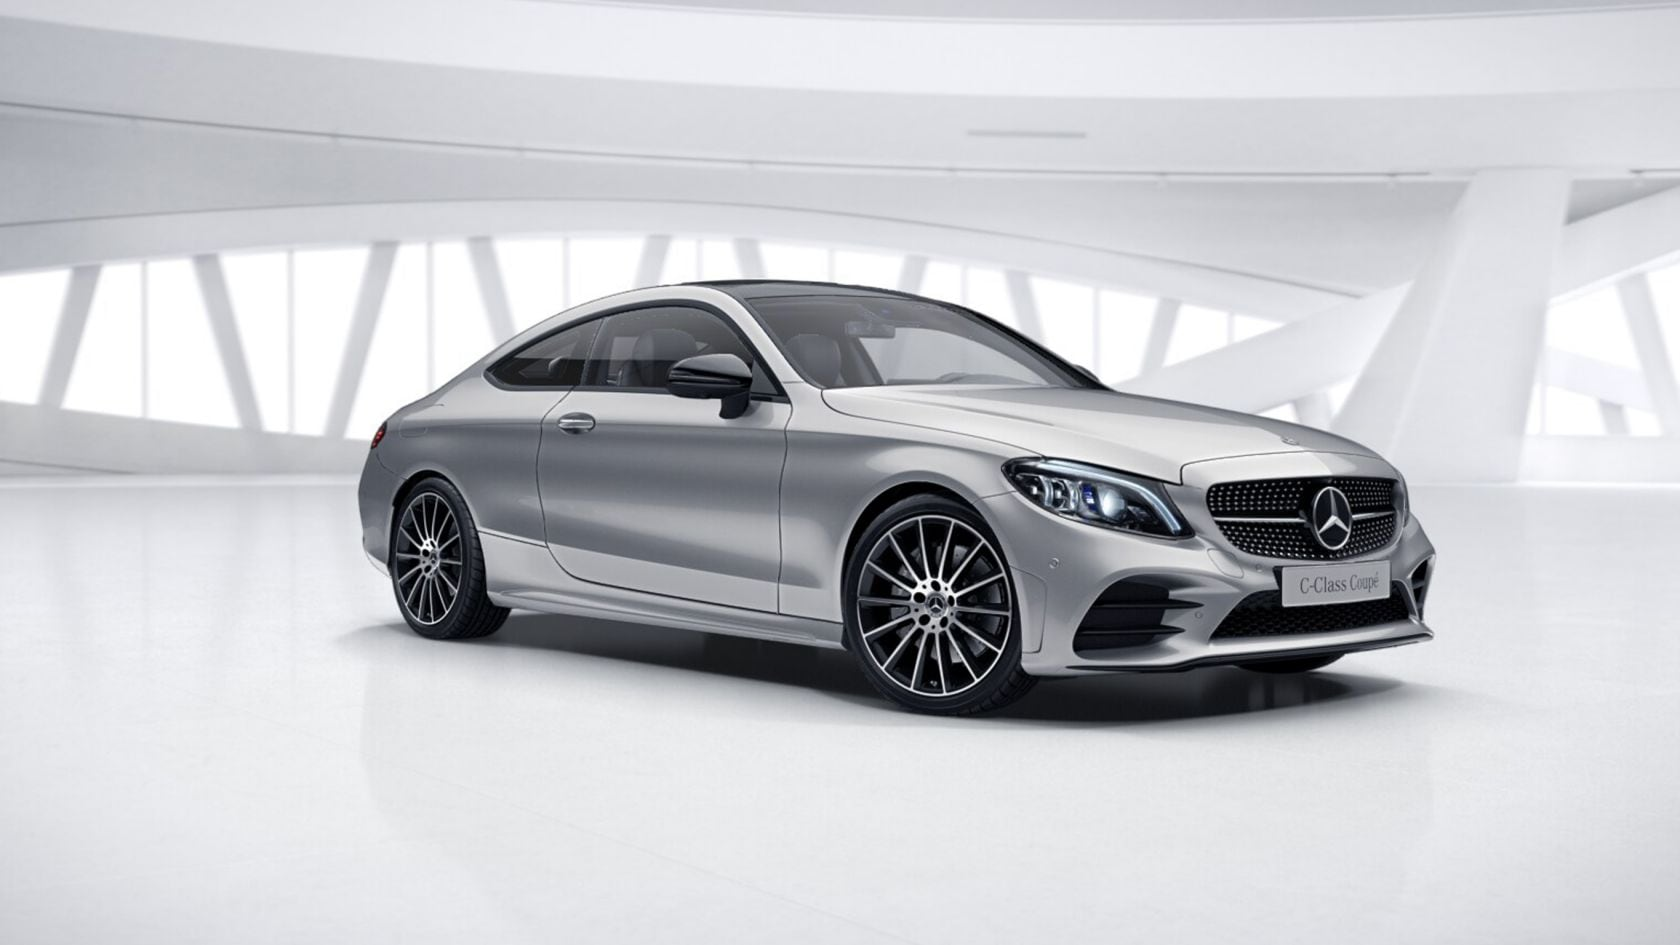 Mercedes Benz C Class Coupe Models And Equipment